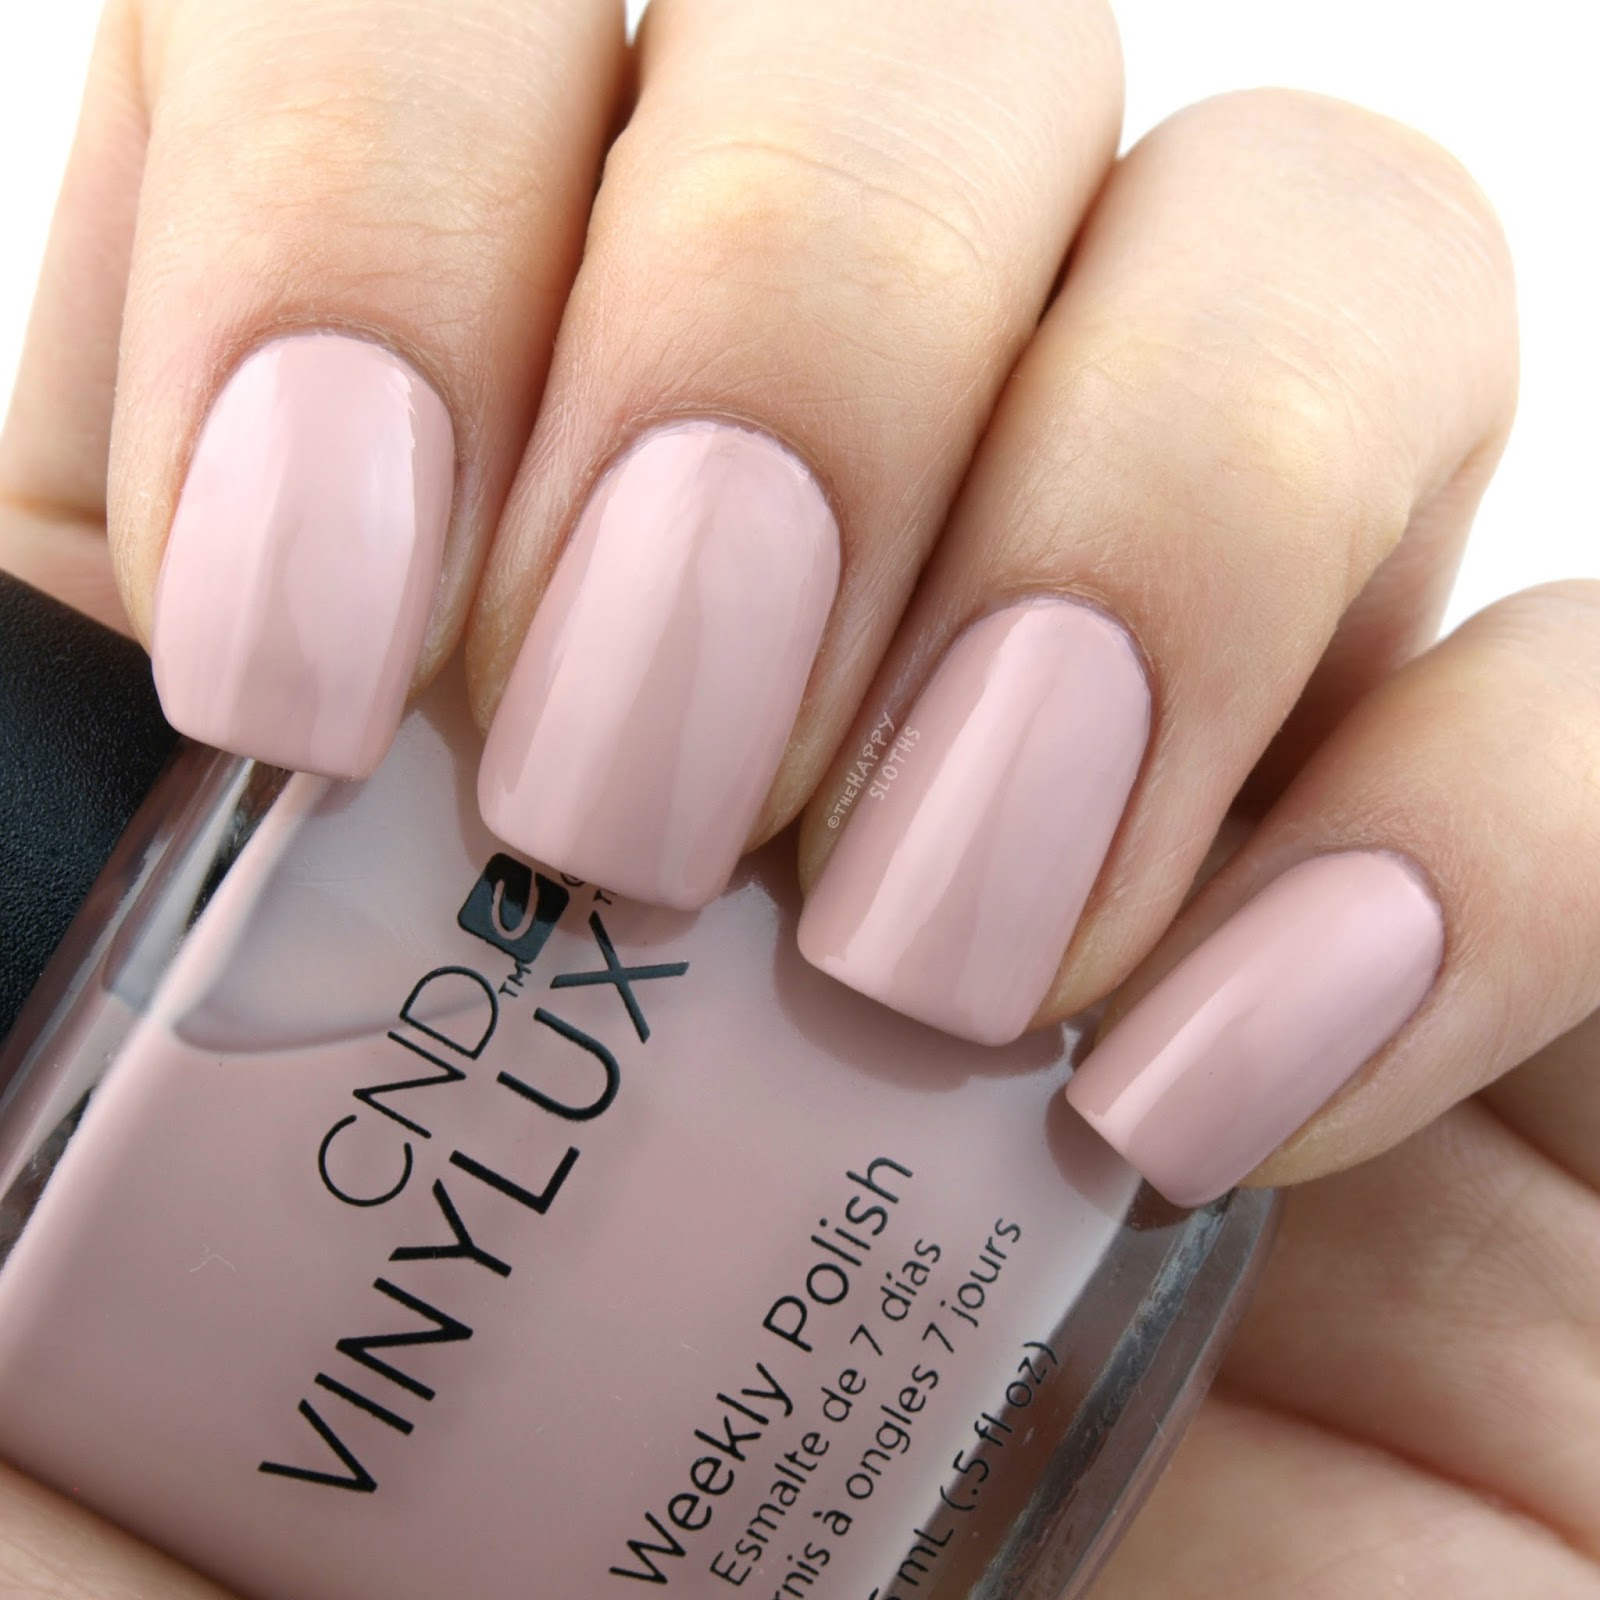 CND Vinylux Intimates Collection | Nude Knickers: Review and Swatches